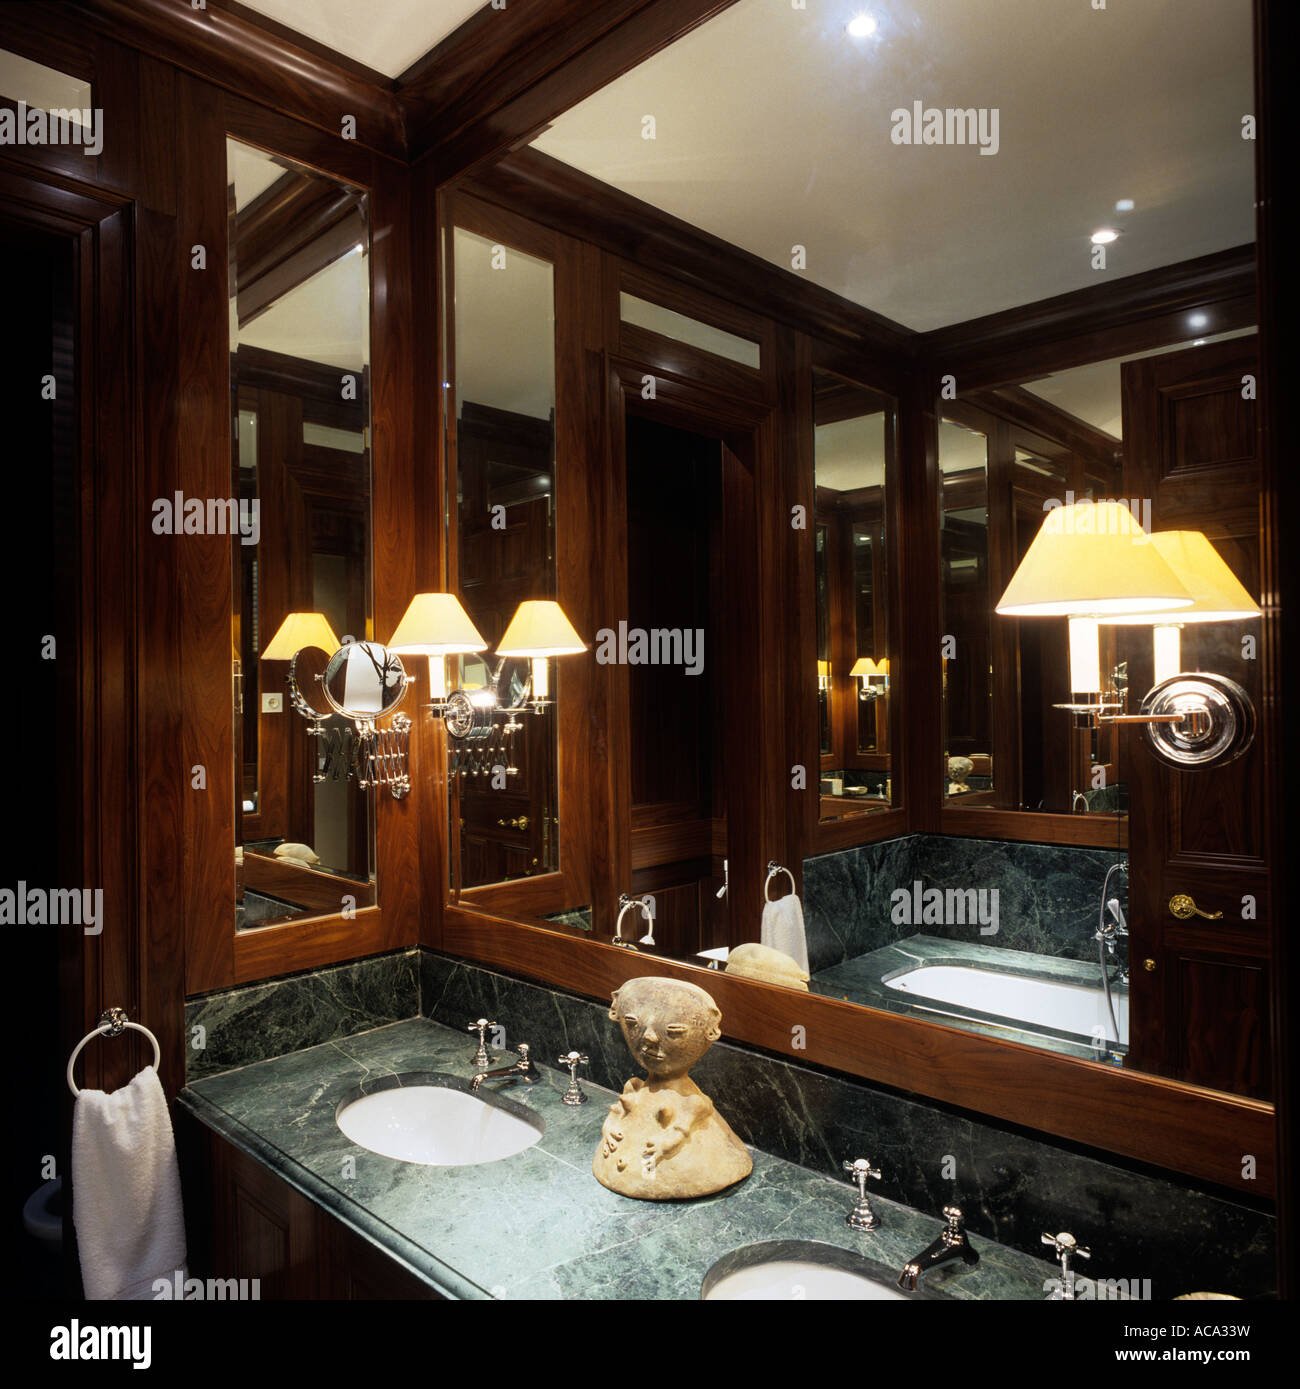 Double basin set in marble unit with wood framed mirror panels - Stock Image